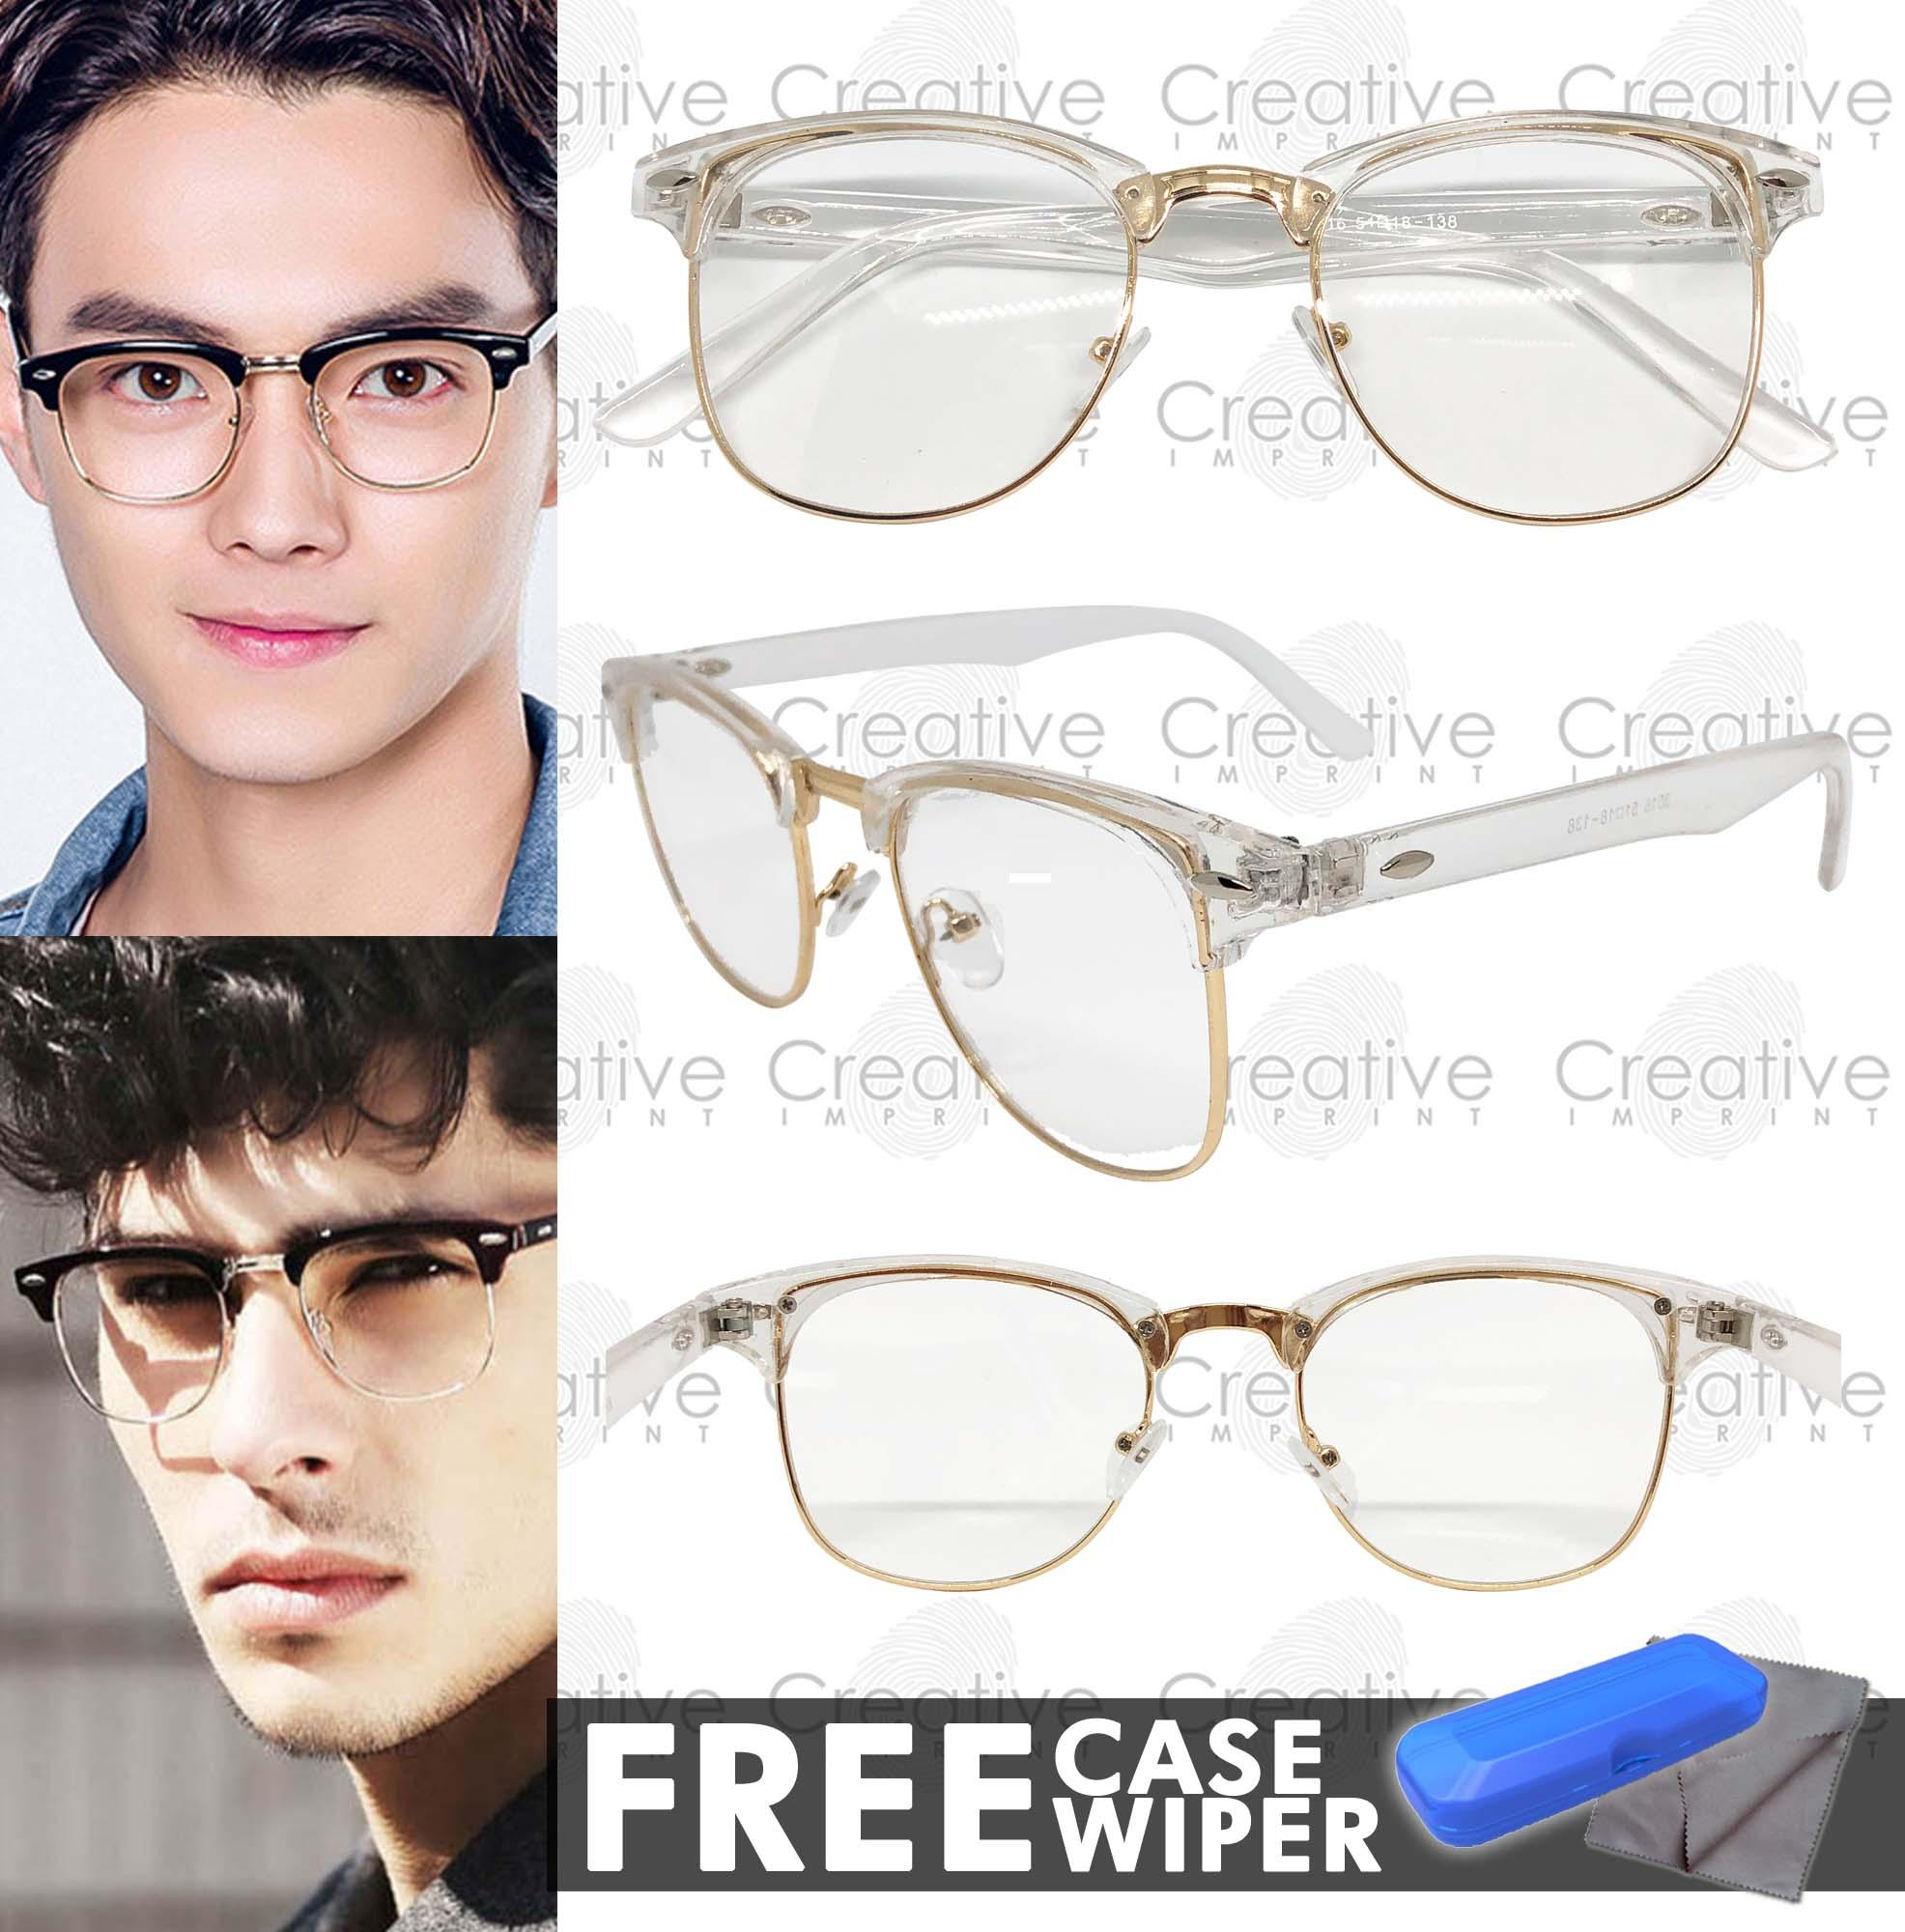 c77319452a6 Creative Imprint Eyeglasses Replaceable Lens (Clubmaster  01 White Gold)  Premium High Quality Specs